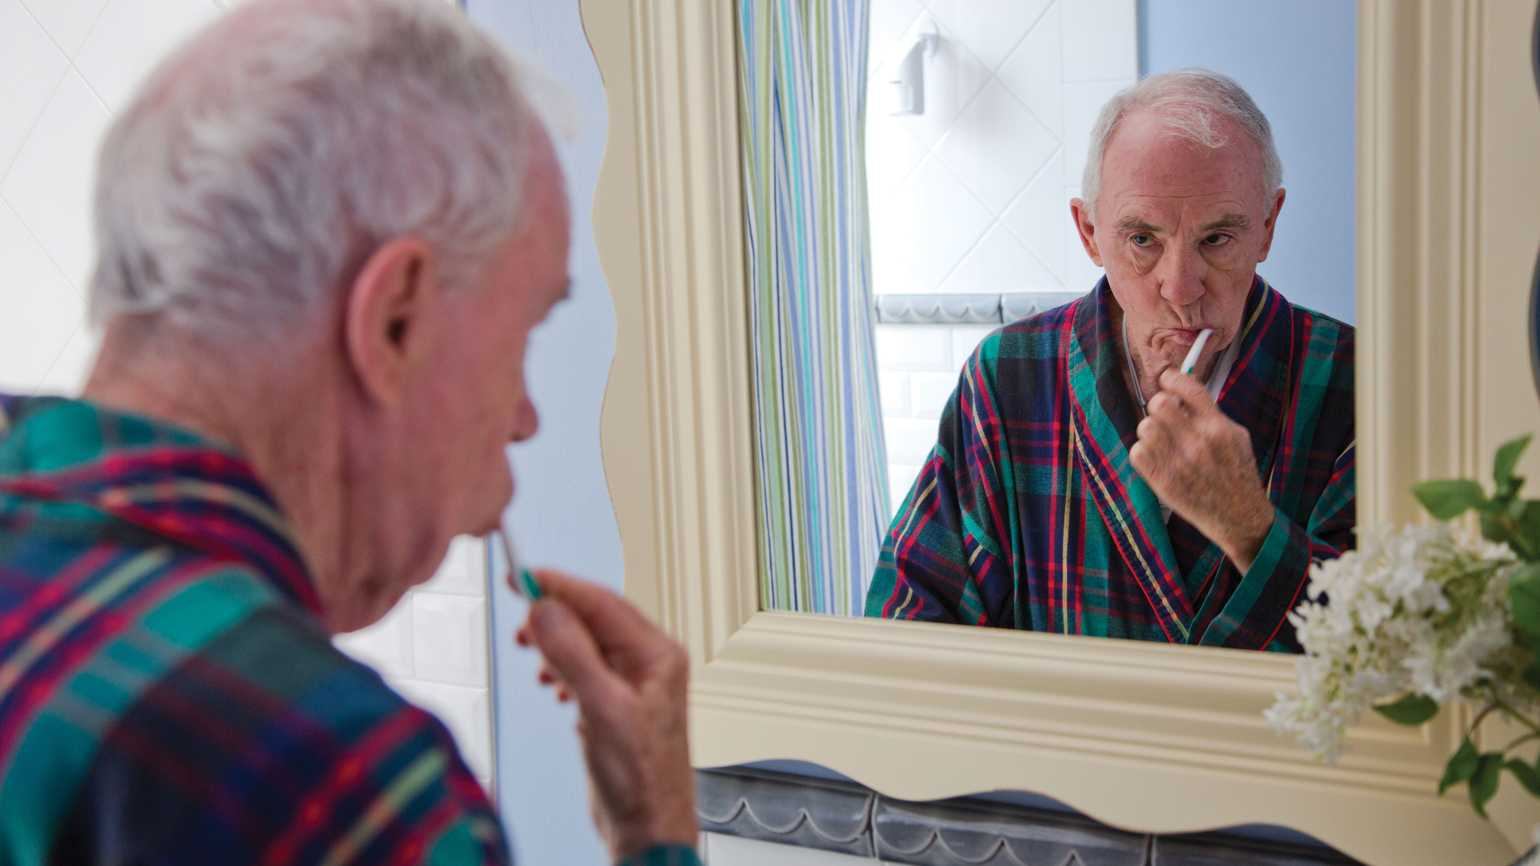 A senior citizen brushing his teeth while looking at his reflection in the bathroom mirror.